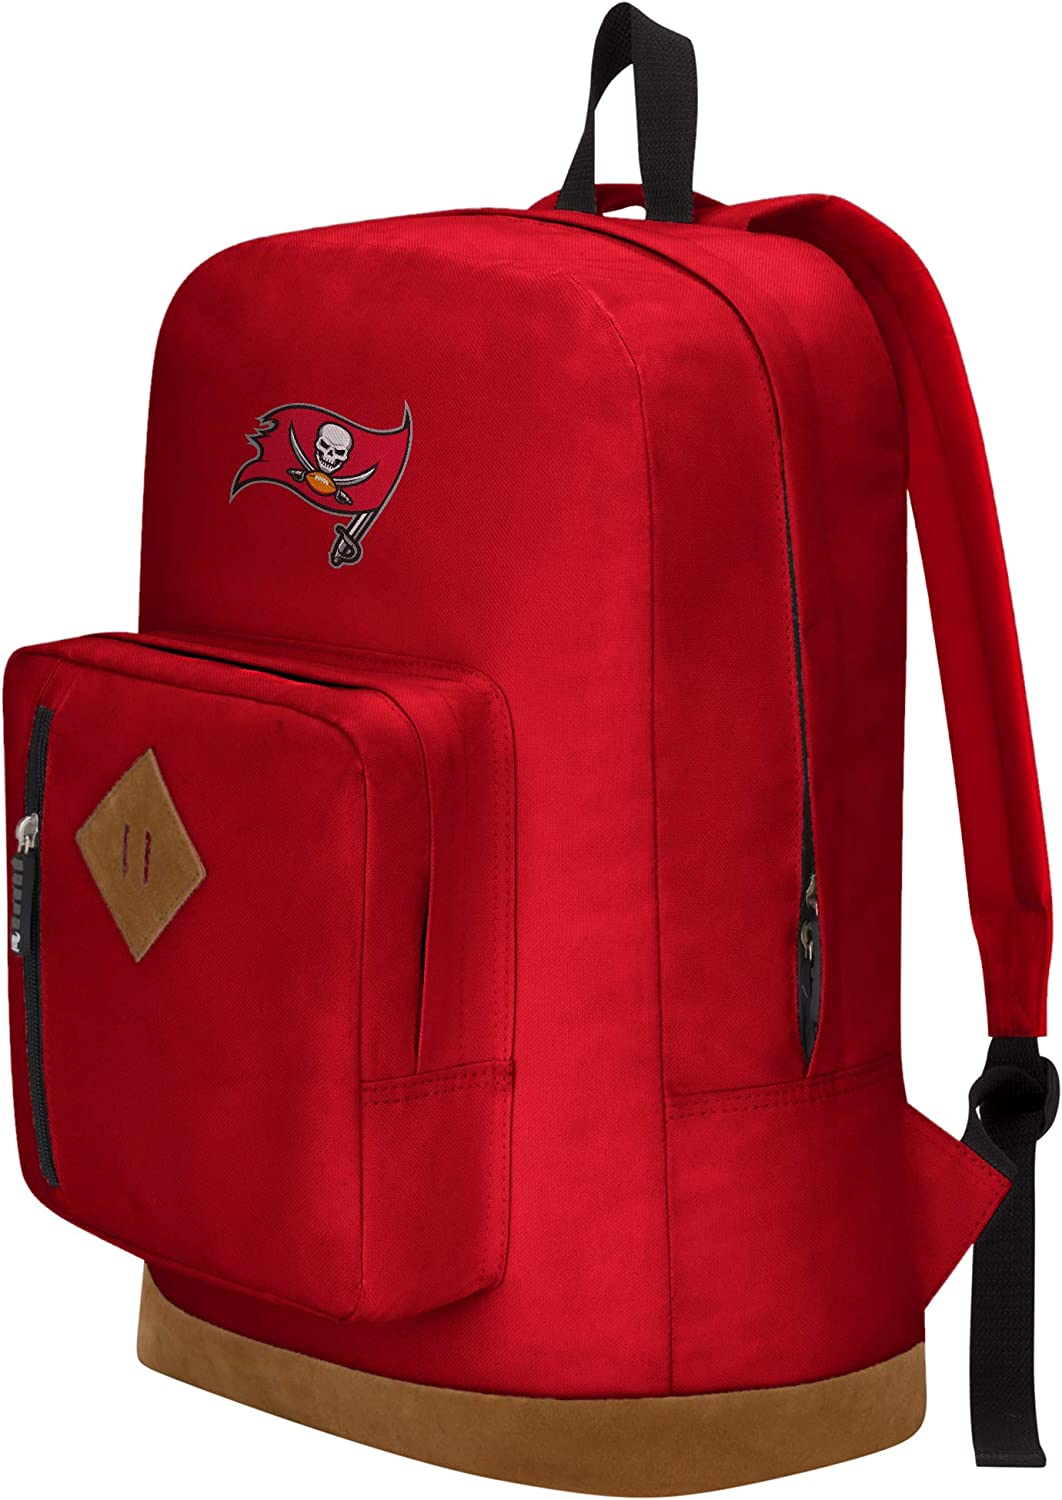 18 x 5 x 13 Red Officially Licensed NFL Tampa Bay Buccaneers Playbook Backpack